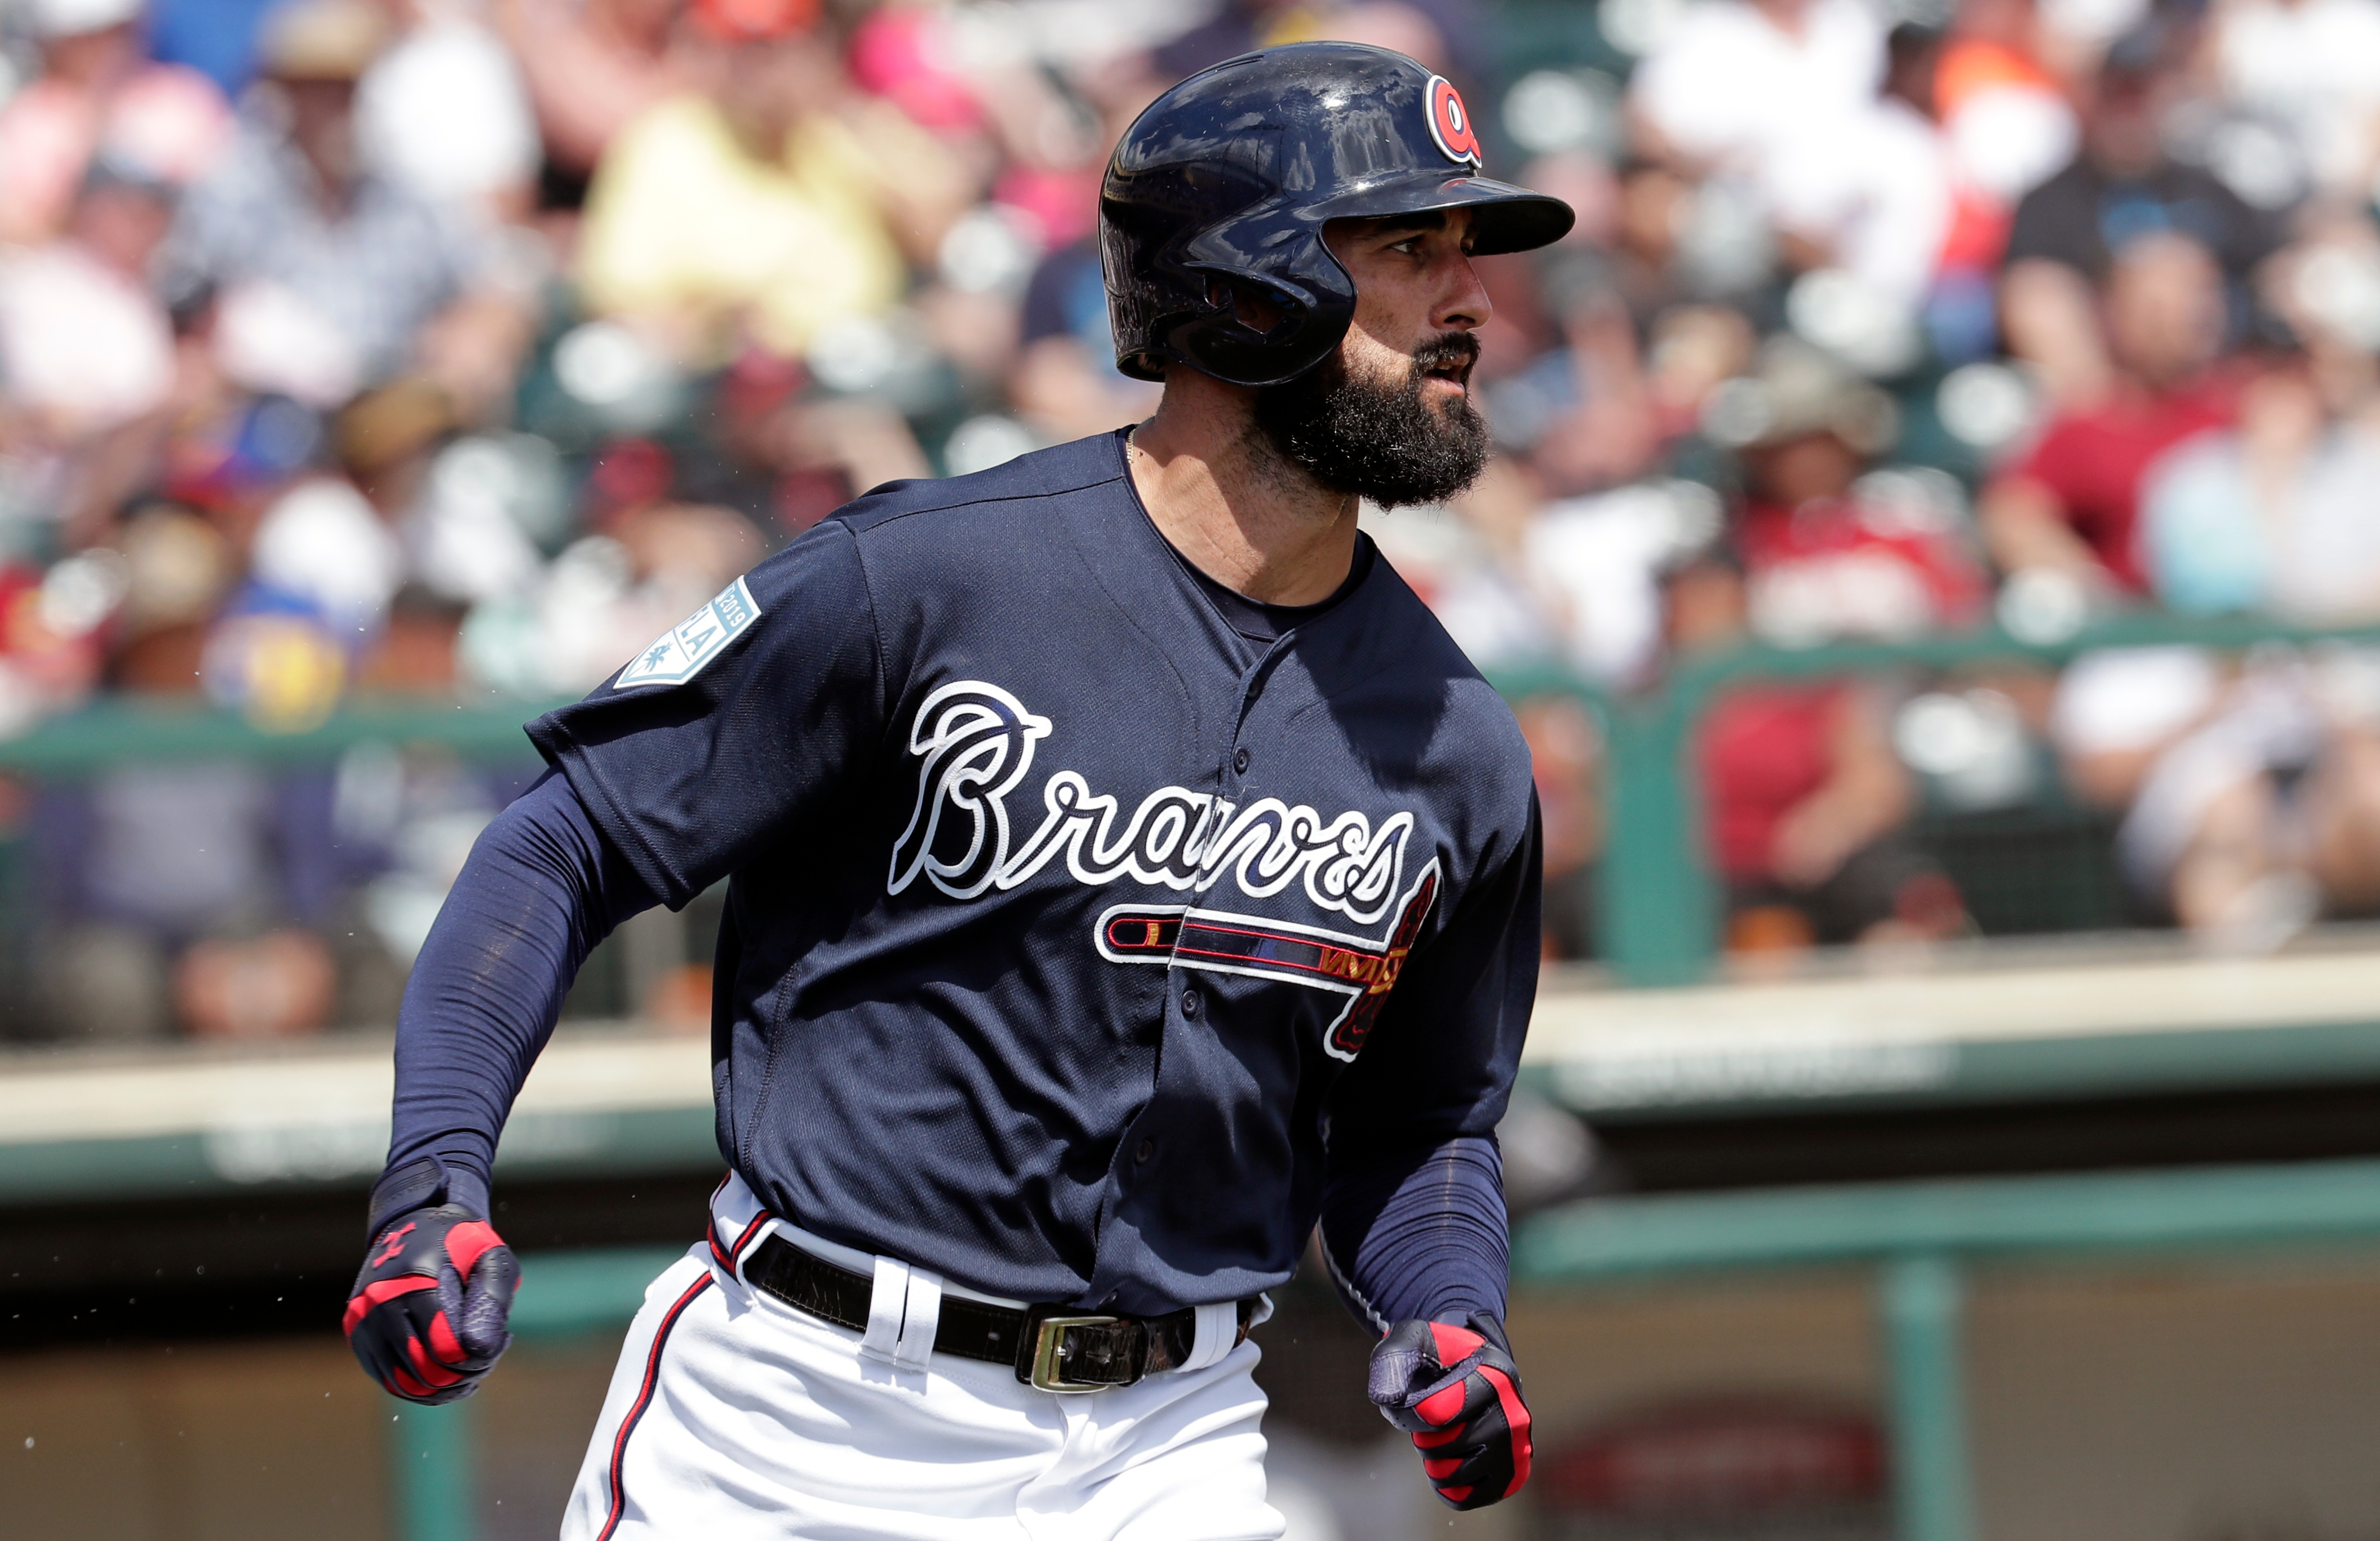 MLB rumors: Braves' Nick Markakis says Astros 'needs a beating' for sign-stealing scandal